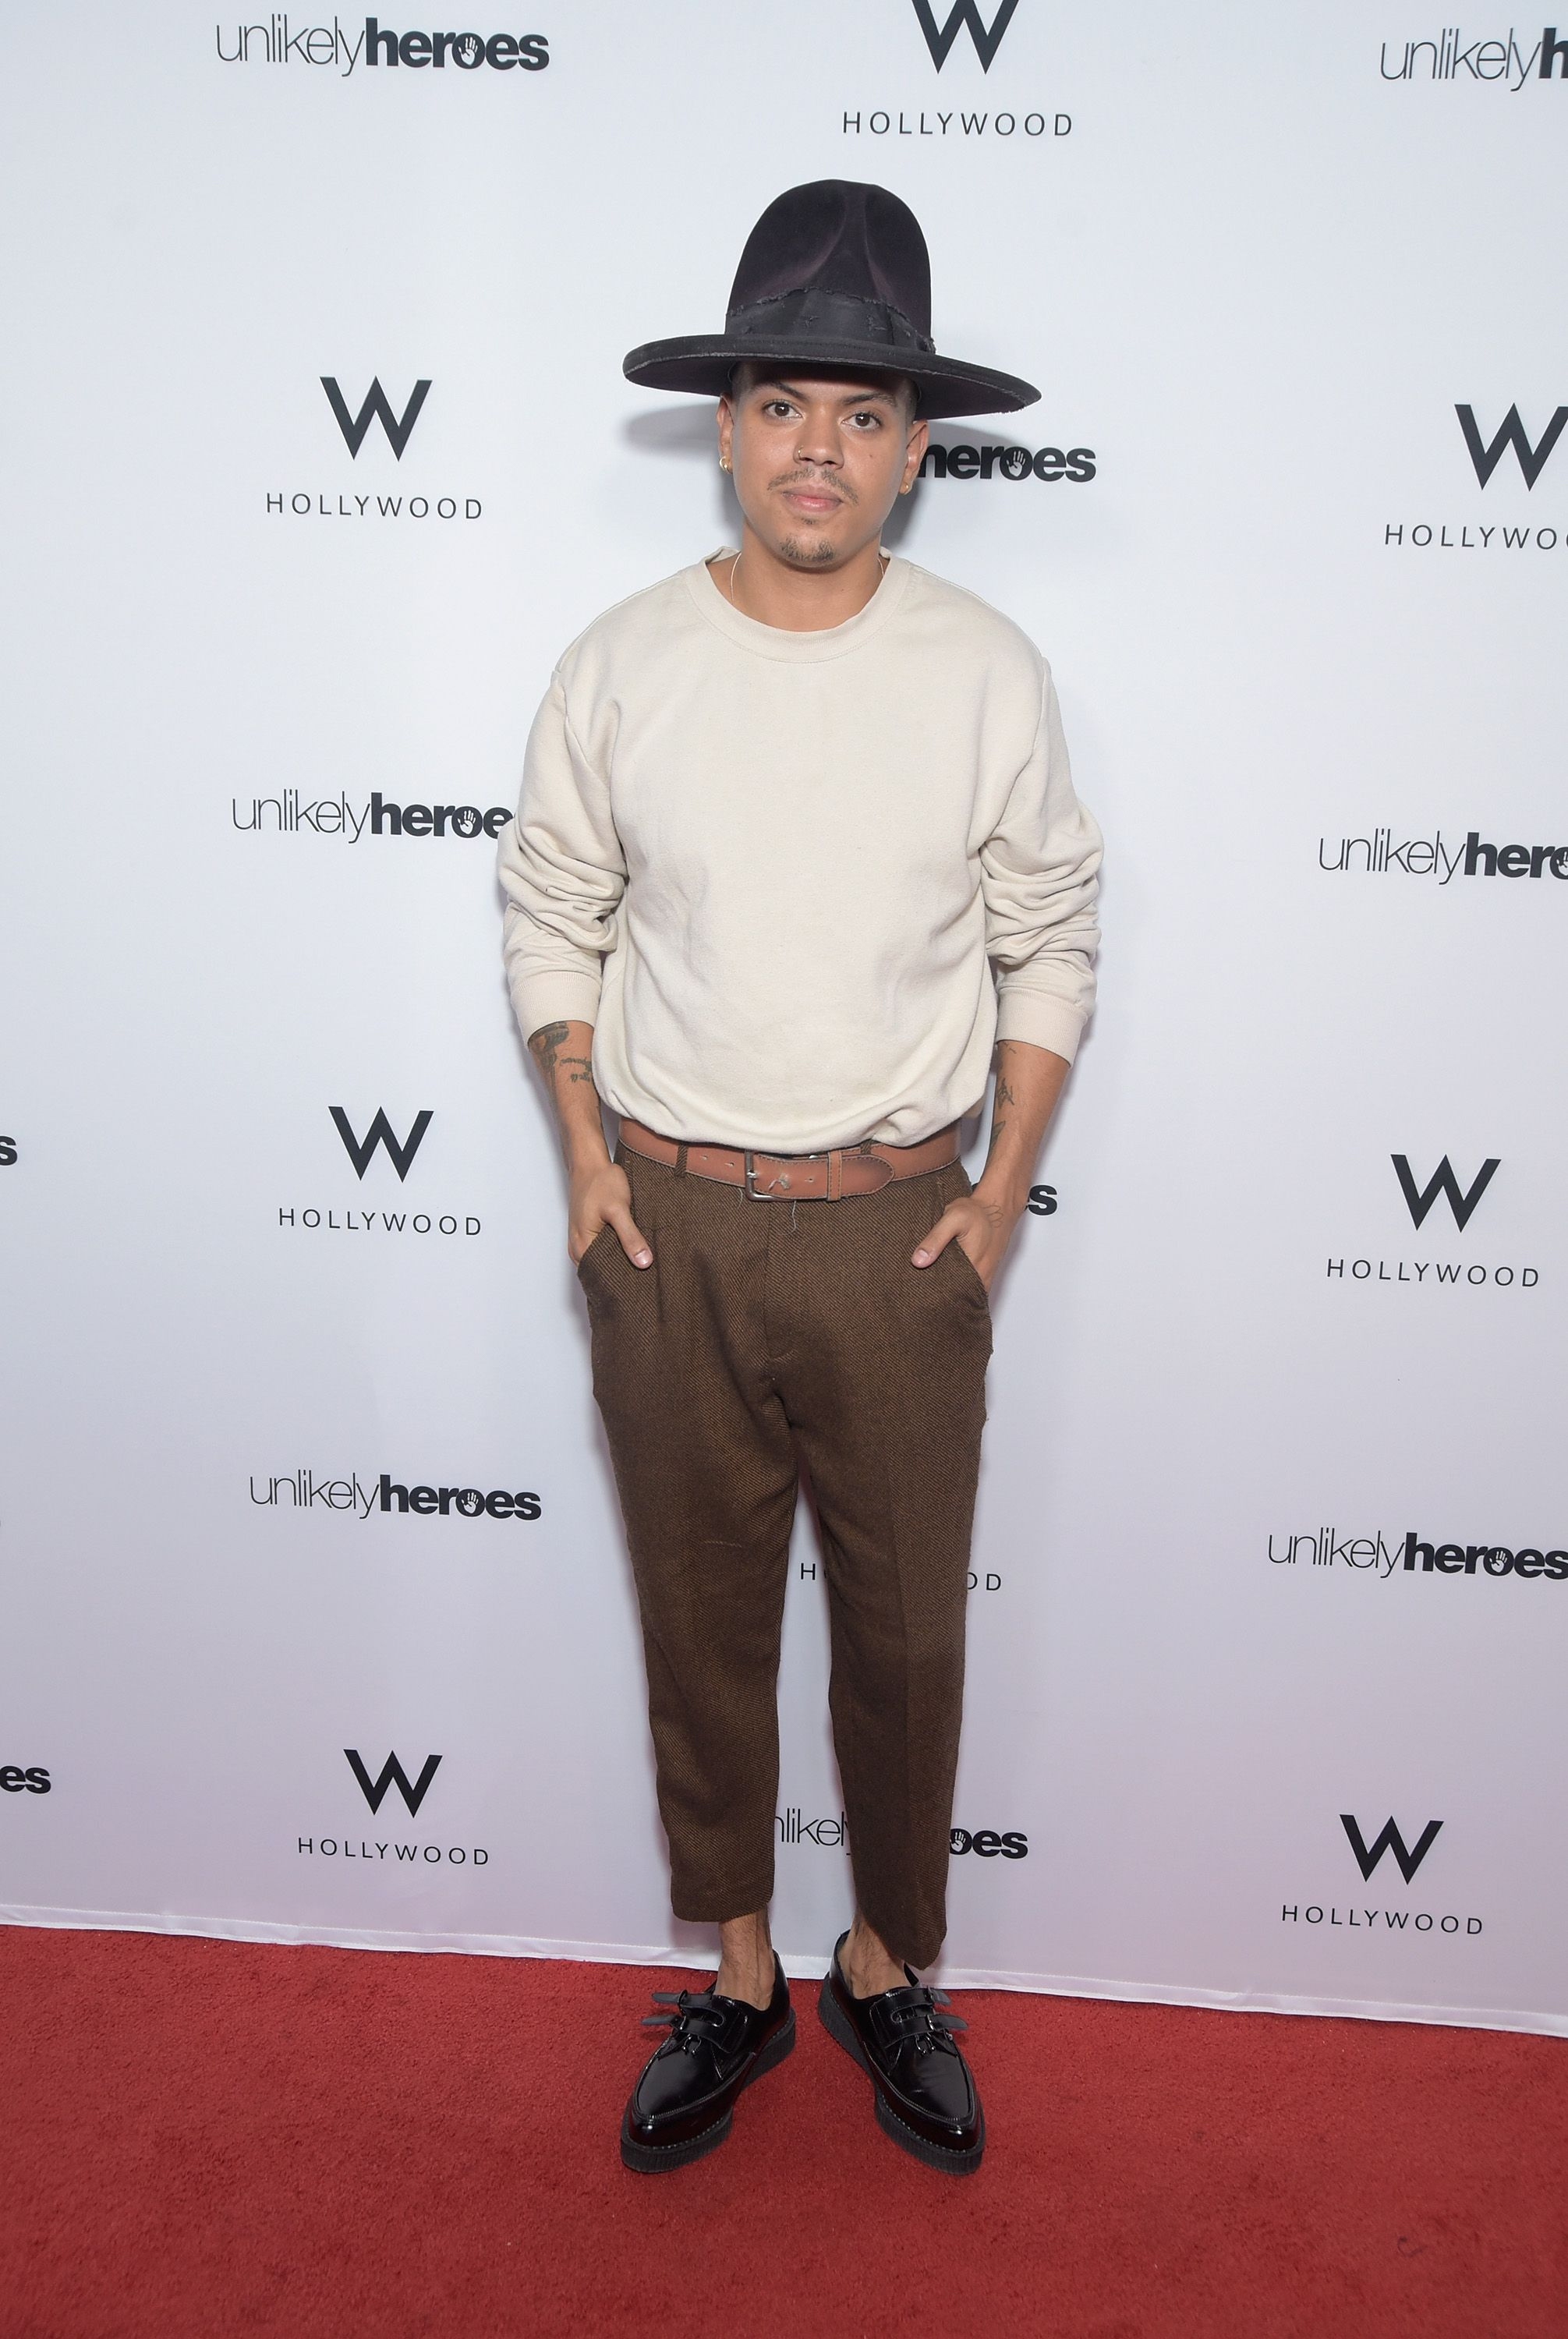 """Evan Ross during """"Nights Of Freedom LA"""" hosted by Unlikely Heroes at W Hollywood on June 21, 2018. 